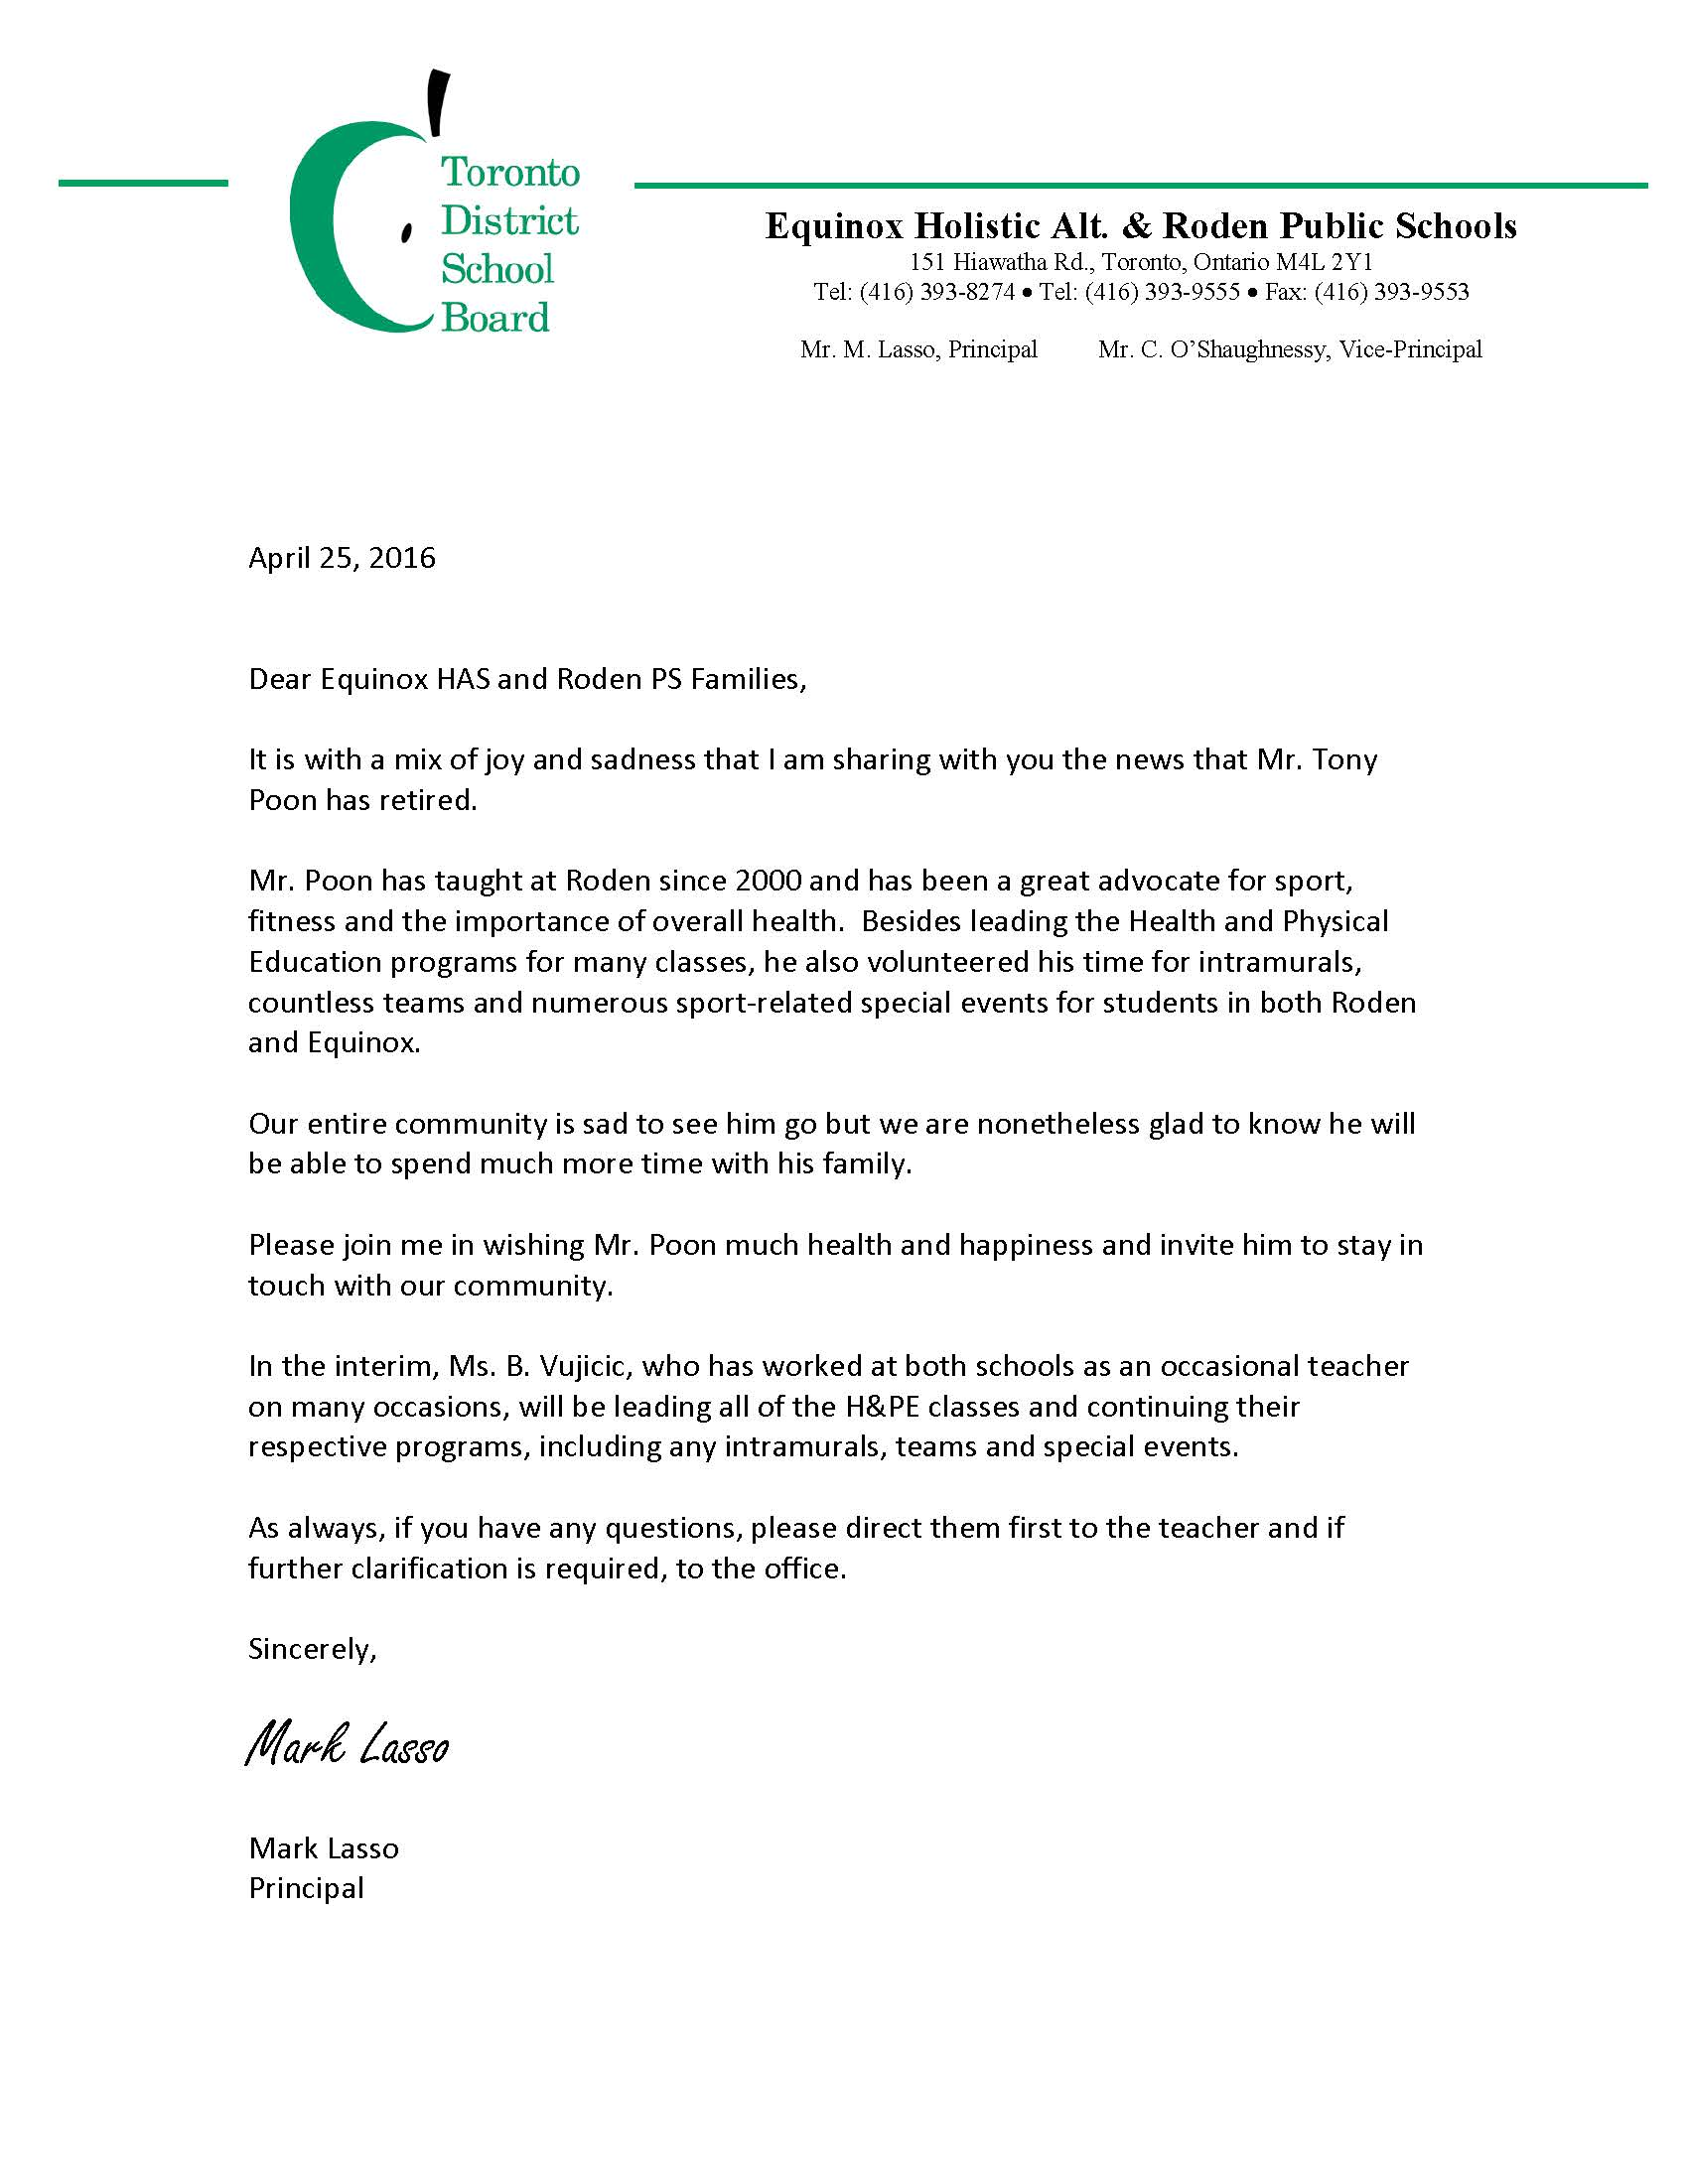 Retirement Letter - Mr. Poon